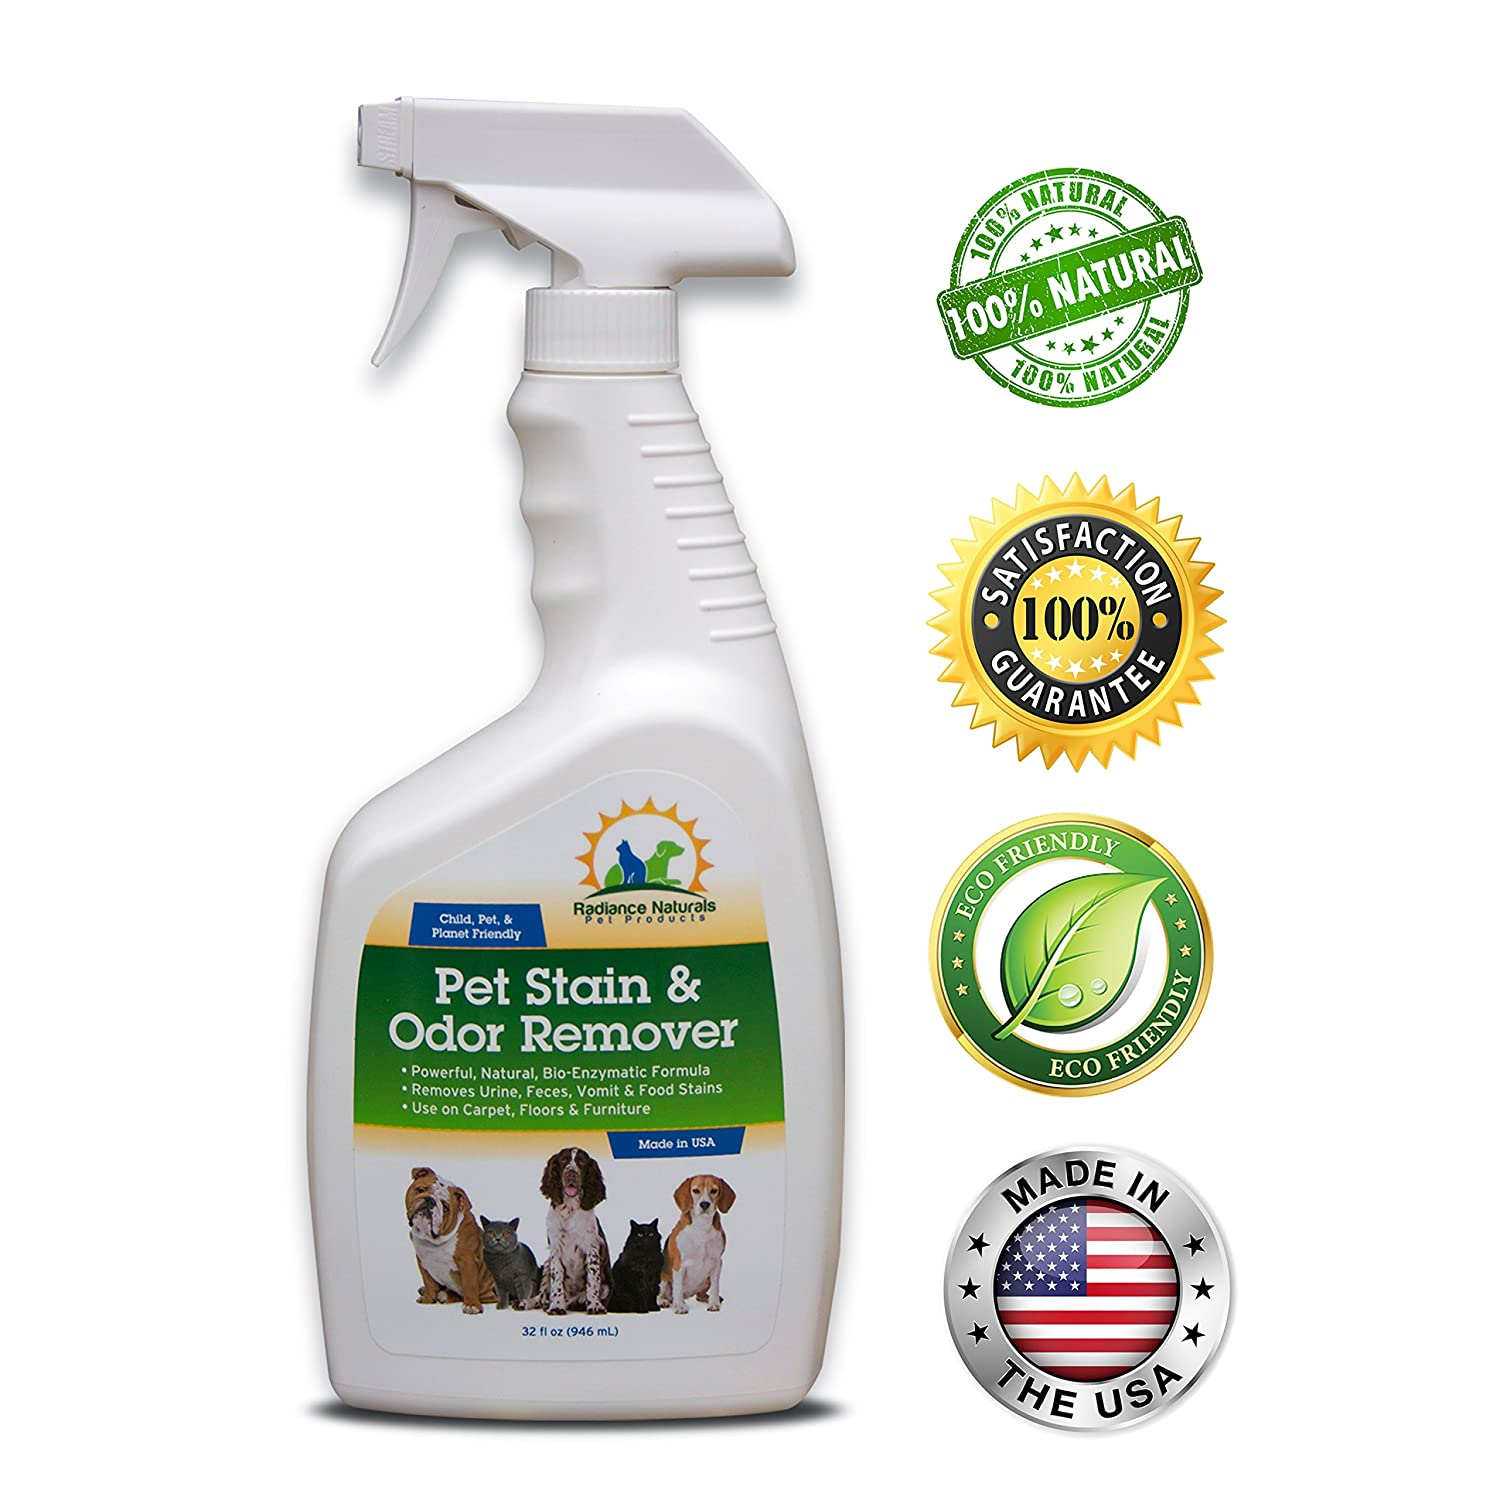 Radiance Naturals Pet Stain and Odor Remover